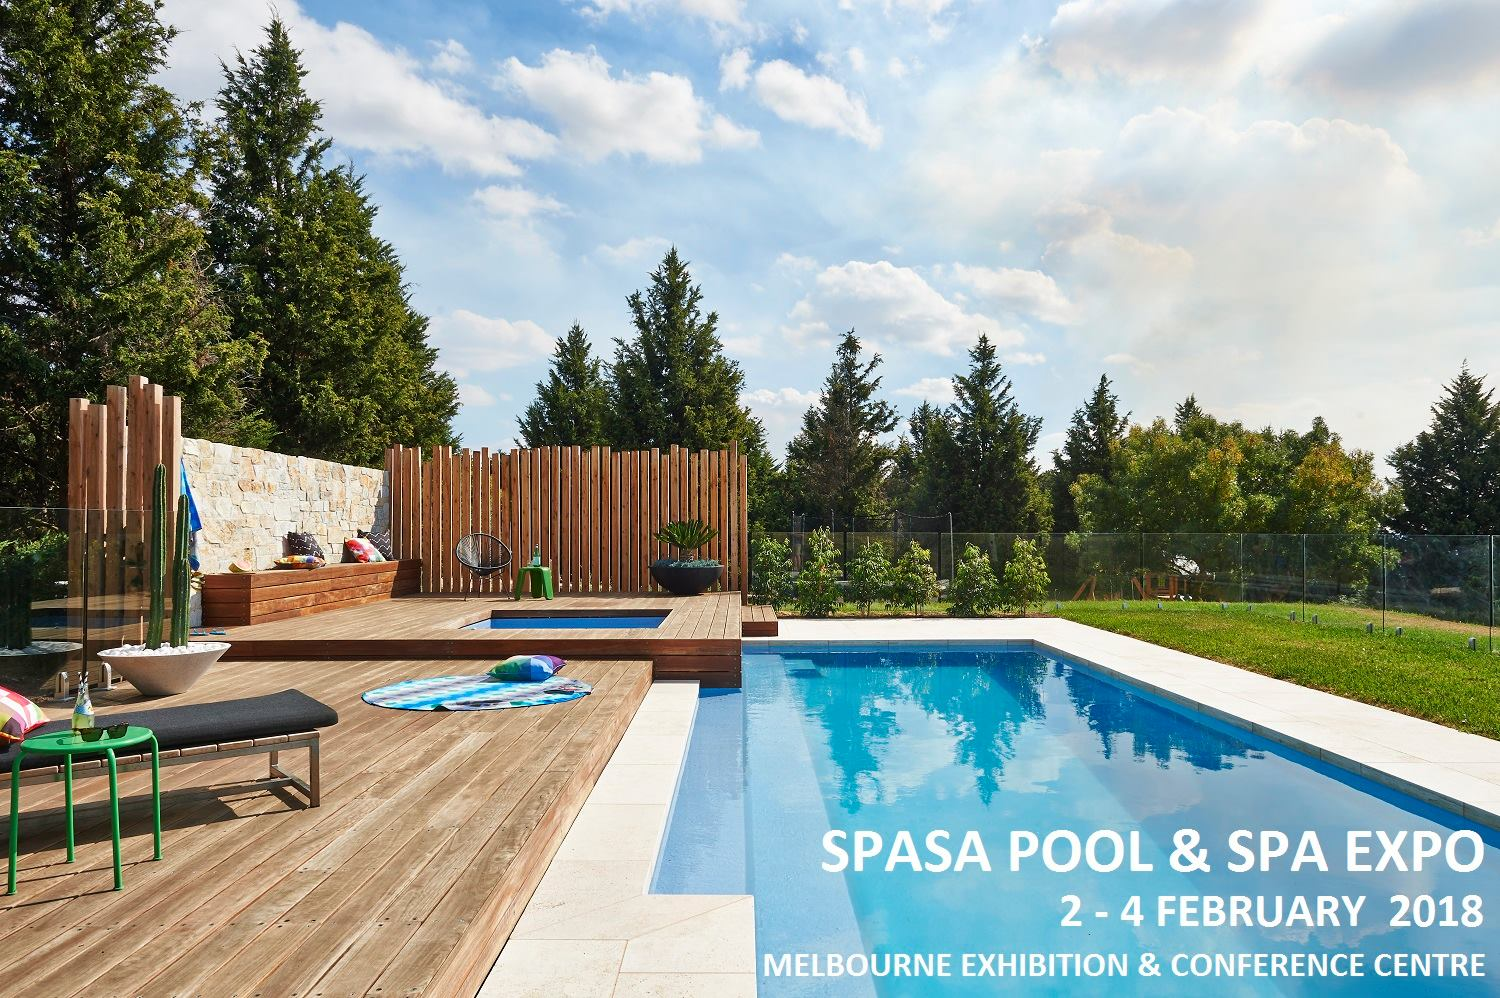 Spasa pool spa expo 2018 melbourne pool and outdoor design for Pool show melbourne